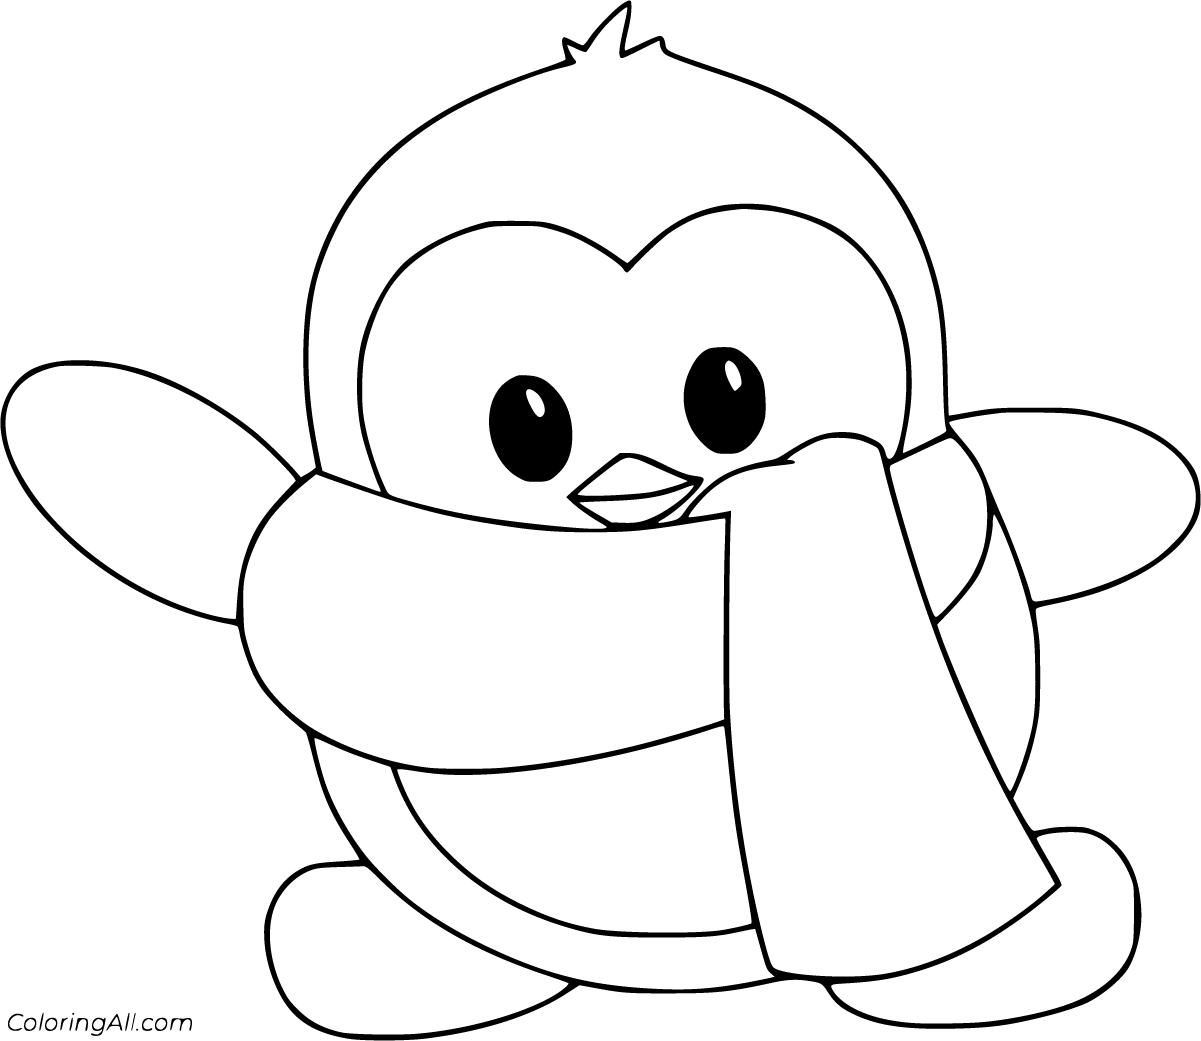 free printable penguin coloring pages penguin coloring pages coloringall free pages printable penguin coloring